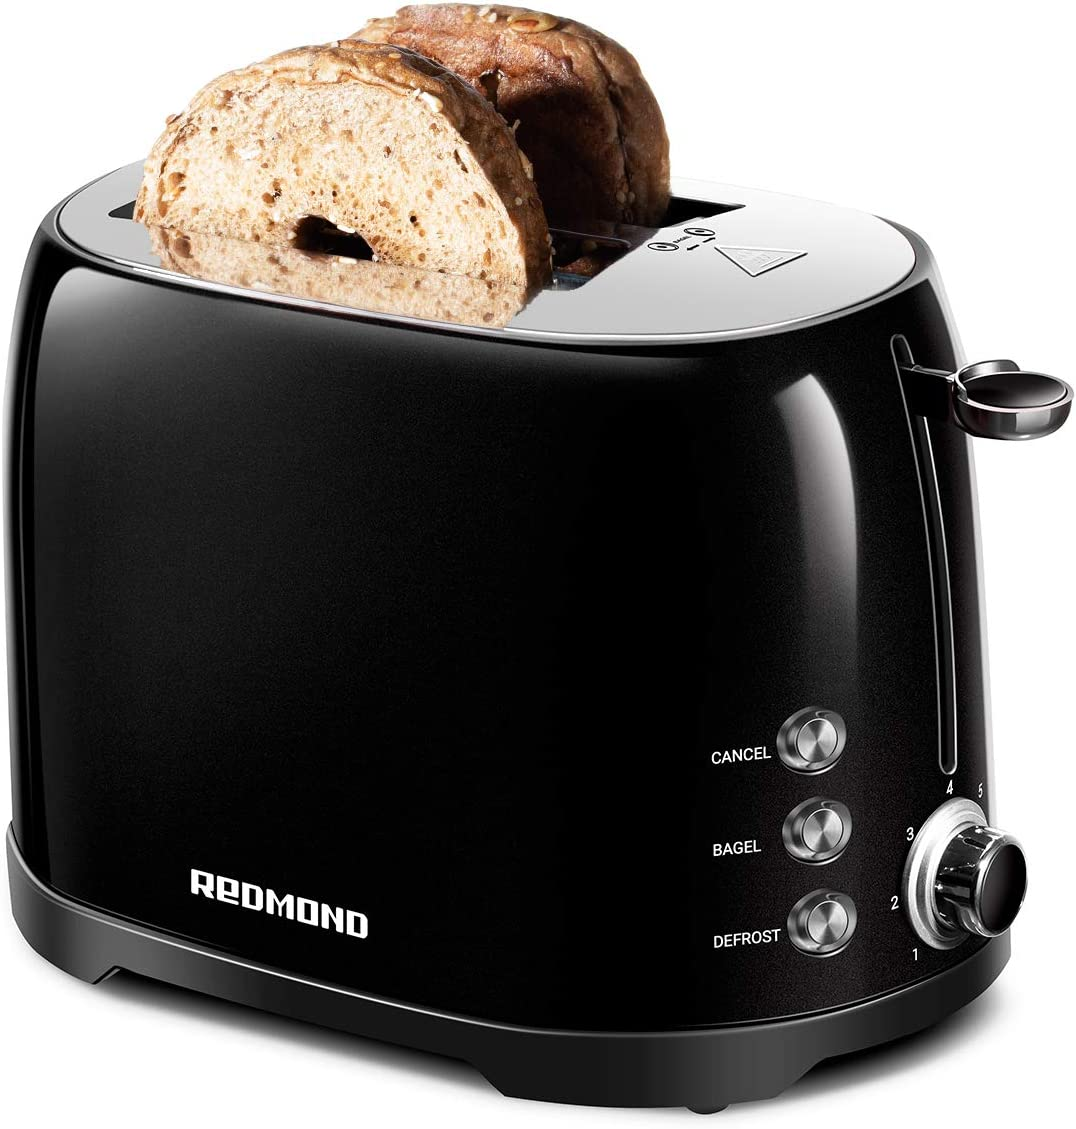 "REDMOND Retro Toaster 2 Slice Stainless Steel Compact Bagel Toaster with 1.5""Extra Wide Slots, 7 Bread Shade Settings, Removable Crumb Tray for Breakfast, 800W (Onxy Black)"